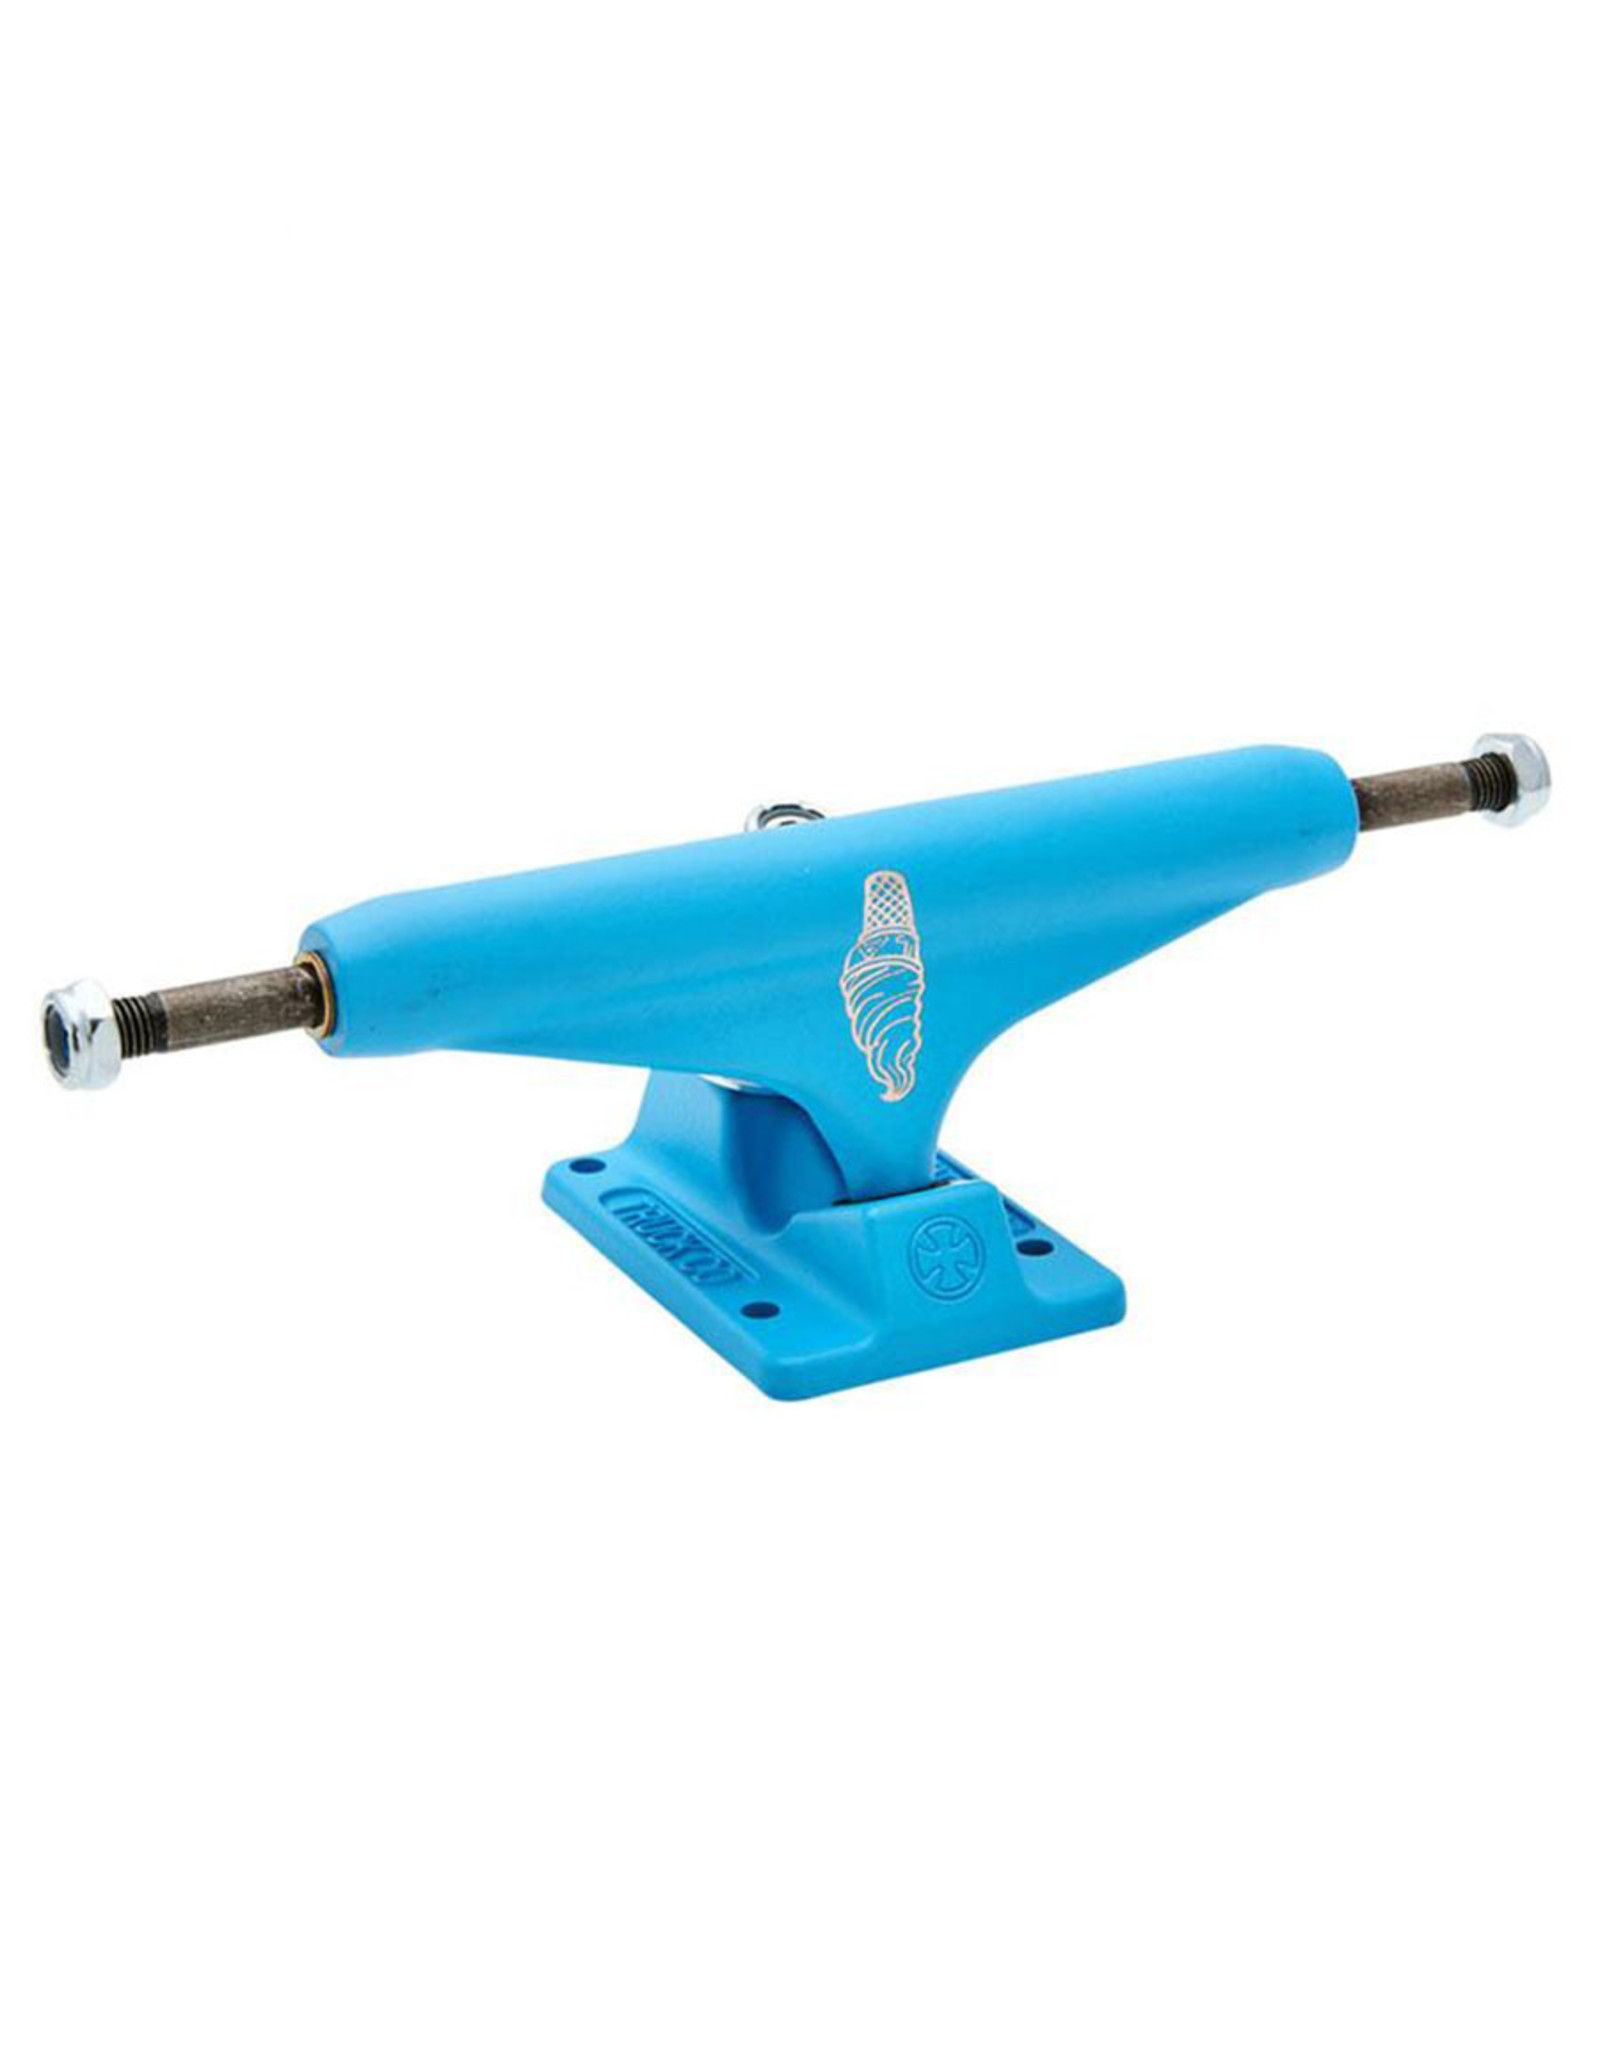 Independent Independent Trucks 144 Stage 11 Lizzie Armanto Hollow Light Blue (Sold in Pair)